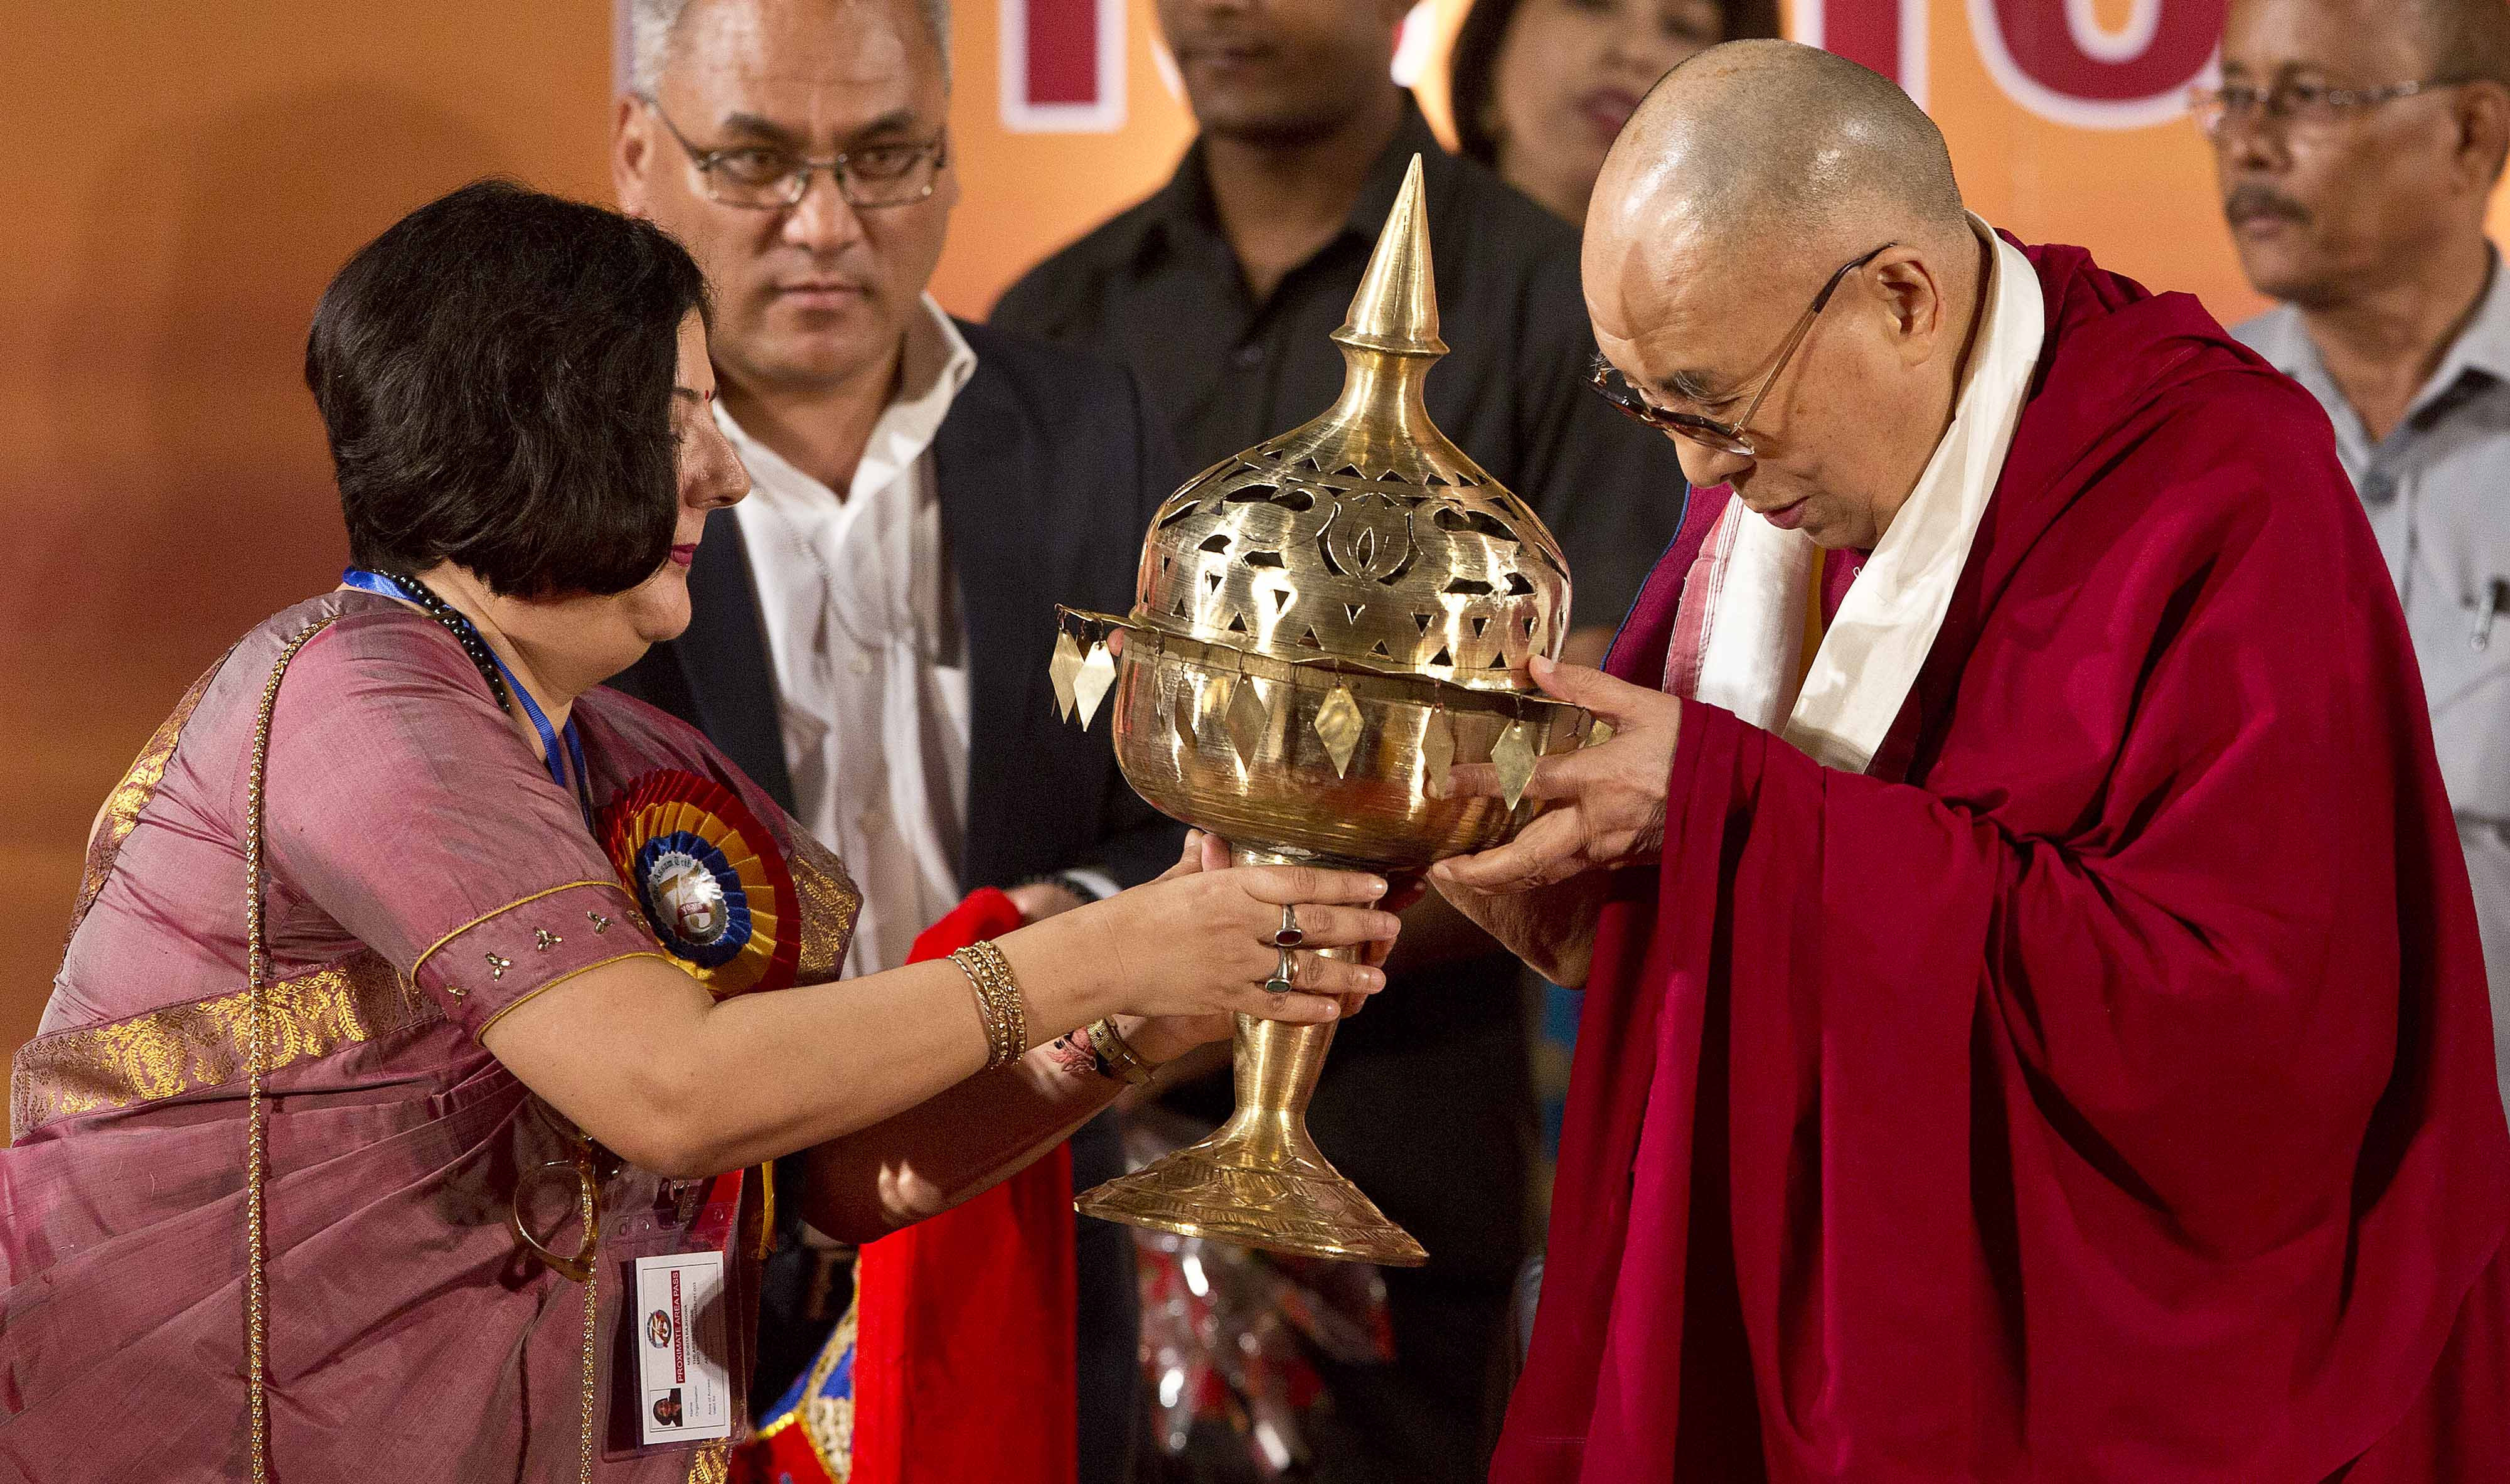 """Babita Rajkhowa, Director of Assam Tribune newspaper, presents a Sarai, a traditional Assamese brass handicraft, to Tibetan spiritual leader Dalai Lama during the platinum jubilee celebrations of Assam Tribune newspaper in Gauhati, India, Saturday, April 1, 2017. The Dalai Lama has recalled his 1959 flight to India from Tibet ahead of a visit to northeast India's Arunachal Pradesh state despite objections by China, which considers it a disputed region. Last month, China warned of """"severe damage"""" to relations with India and increased regional instability if the Dalai Lama proceeds with his April 4-11 trip to the state. (AP Photo/Anupam Nath)"""